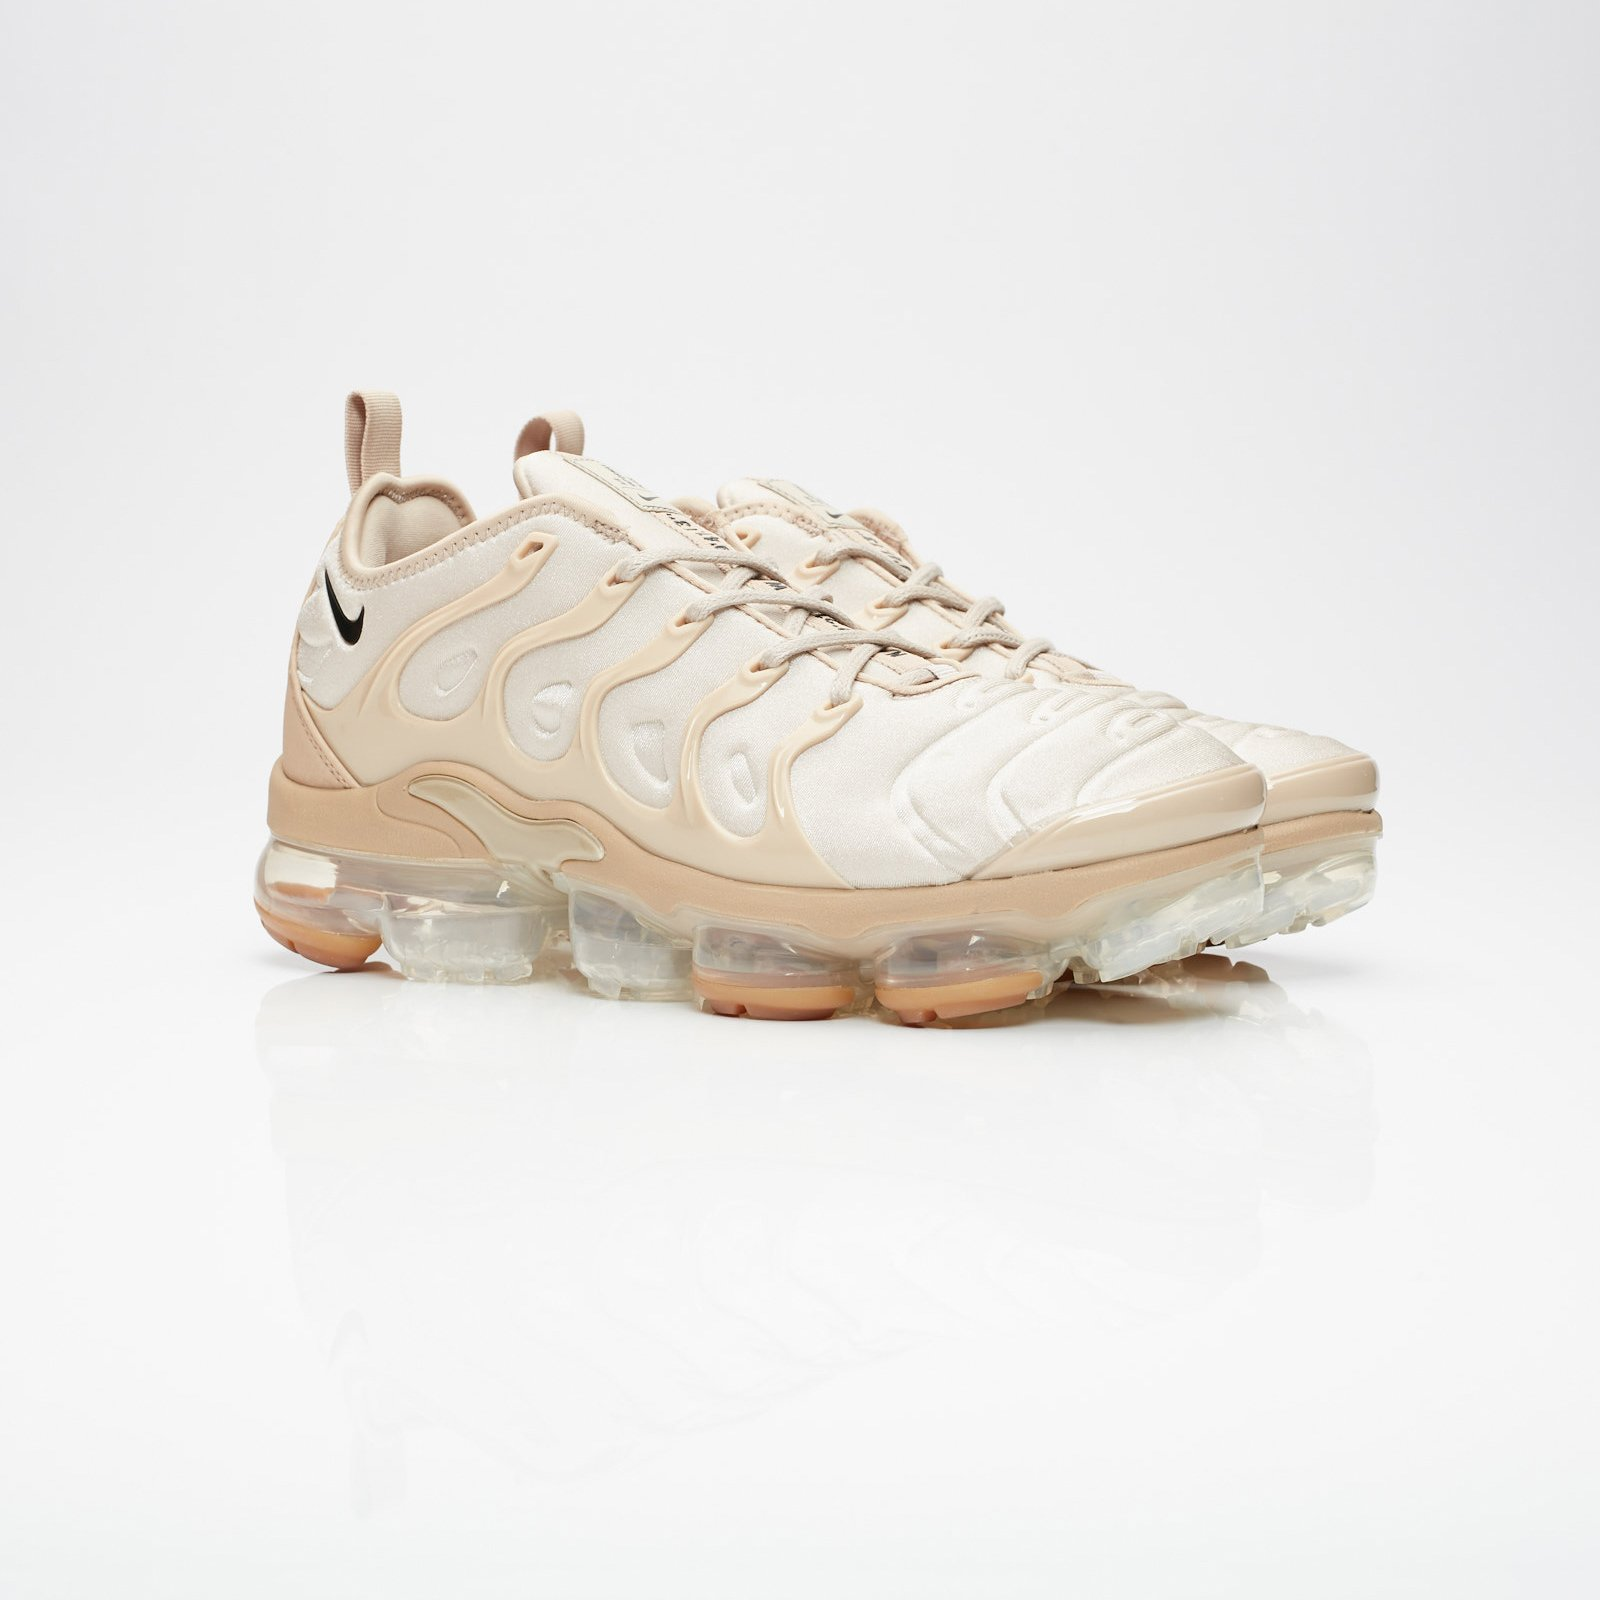 newest dfb08 78ff7 Nike Air Vapormax Plus - At5681-200 - Sneakersnstuff ...